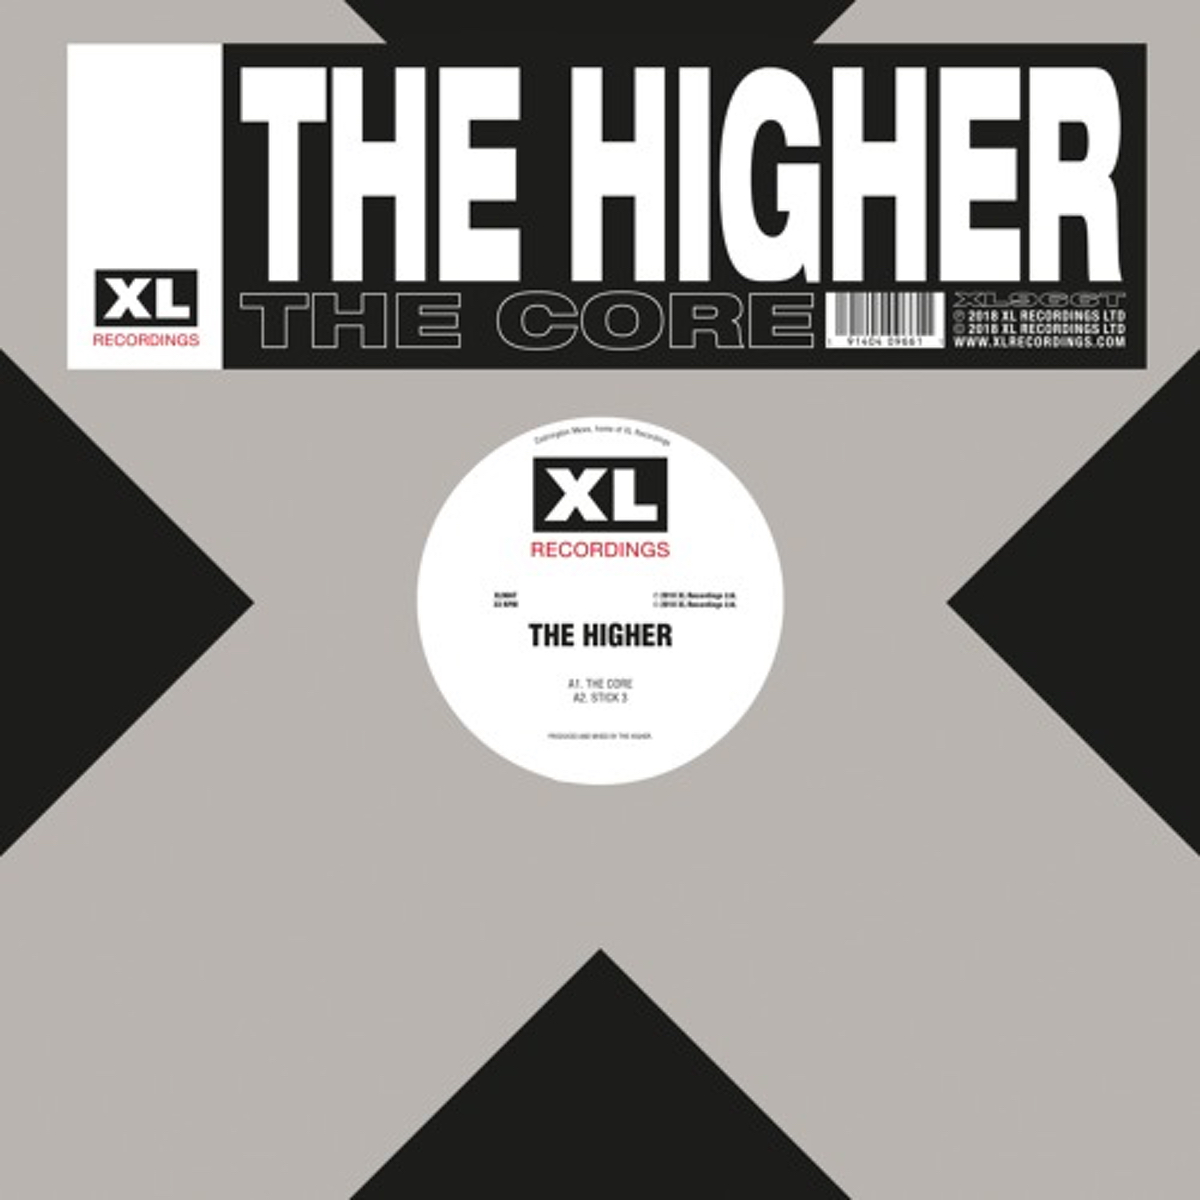 Shed debuts on XL Recordings under new hardcore alias The Higher